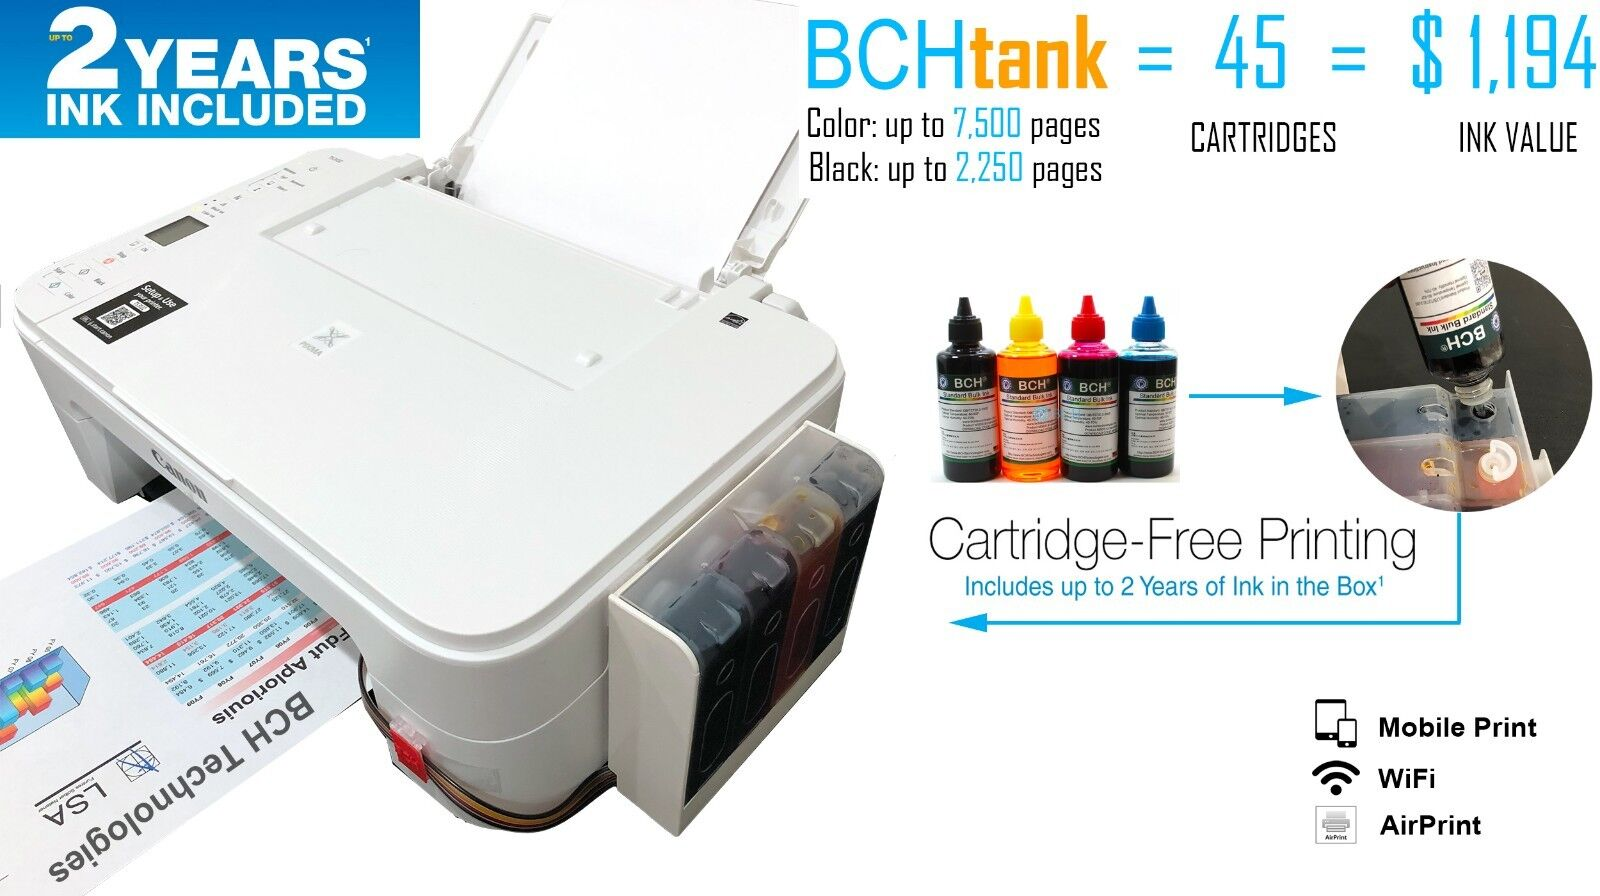 New Canon Printer with Ink System Installed: PIXMA TS3122 +